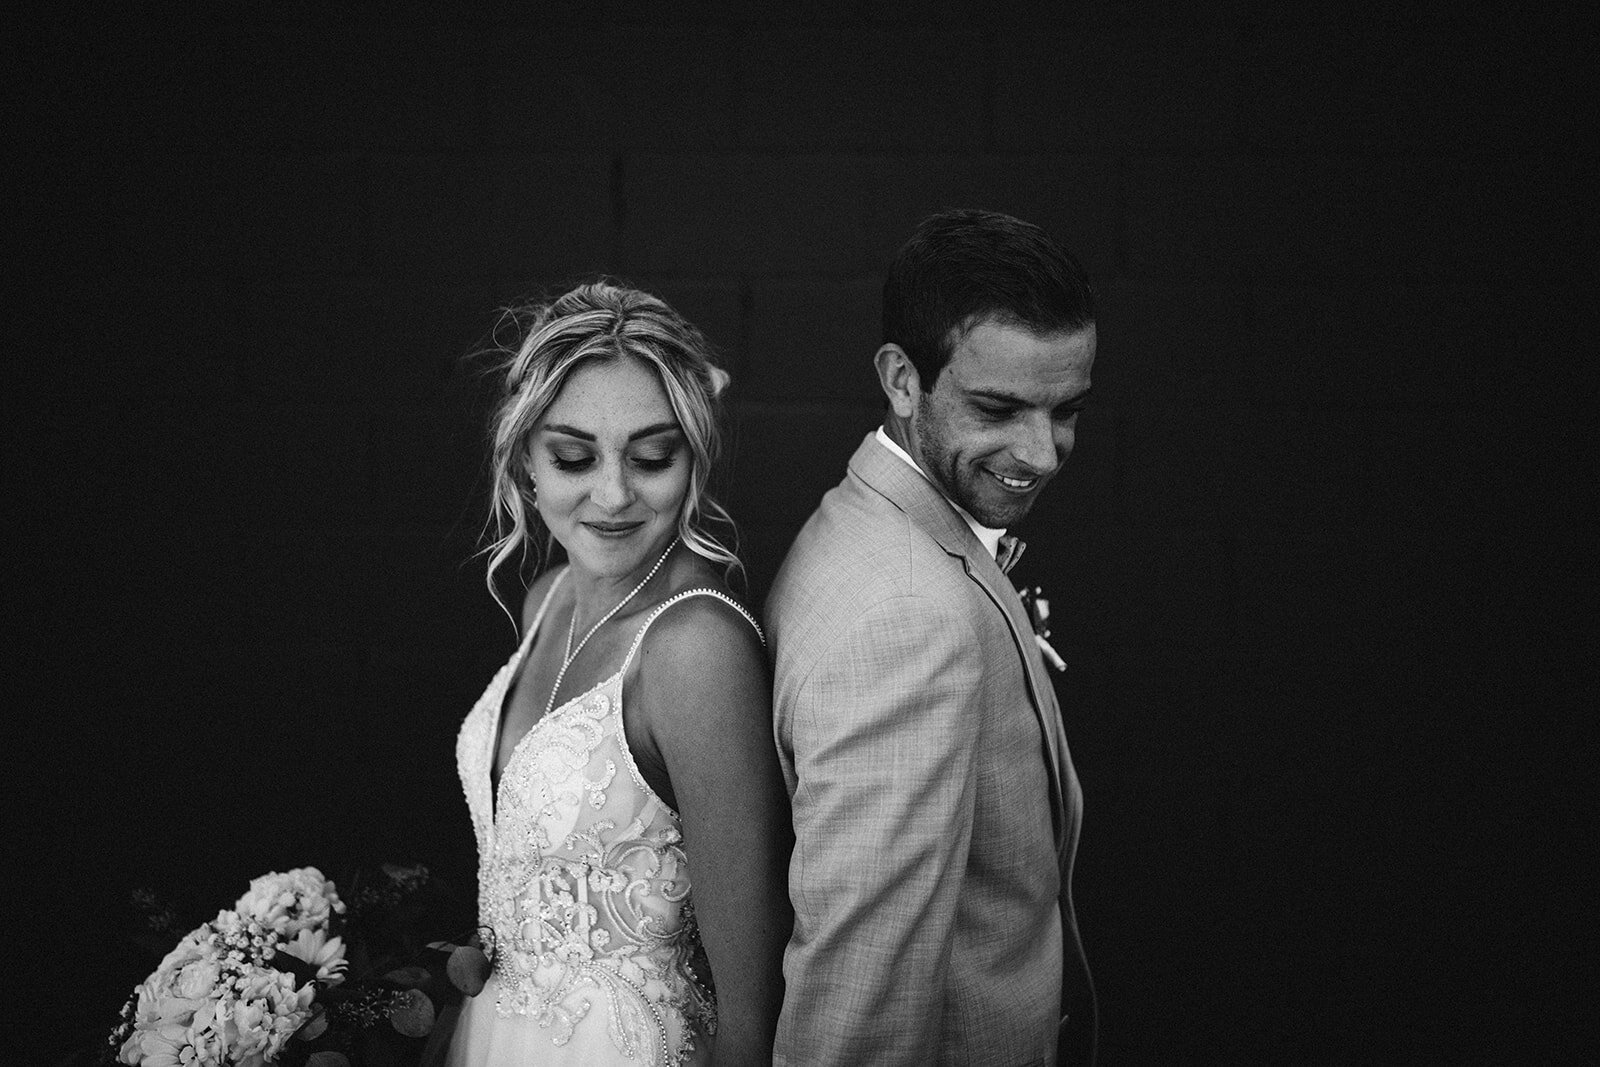 Weddings & Elopements - view our work